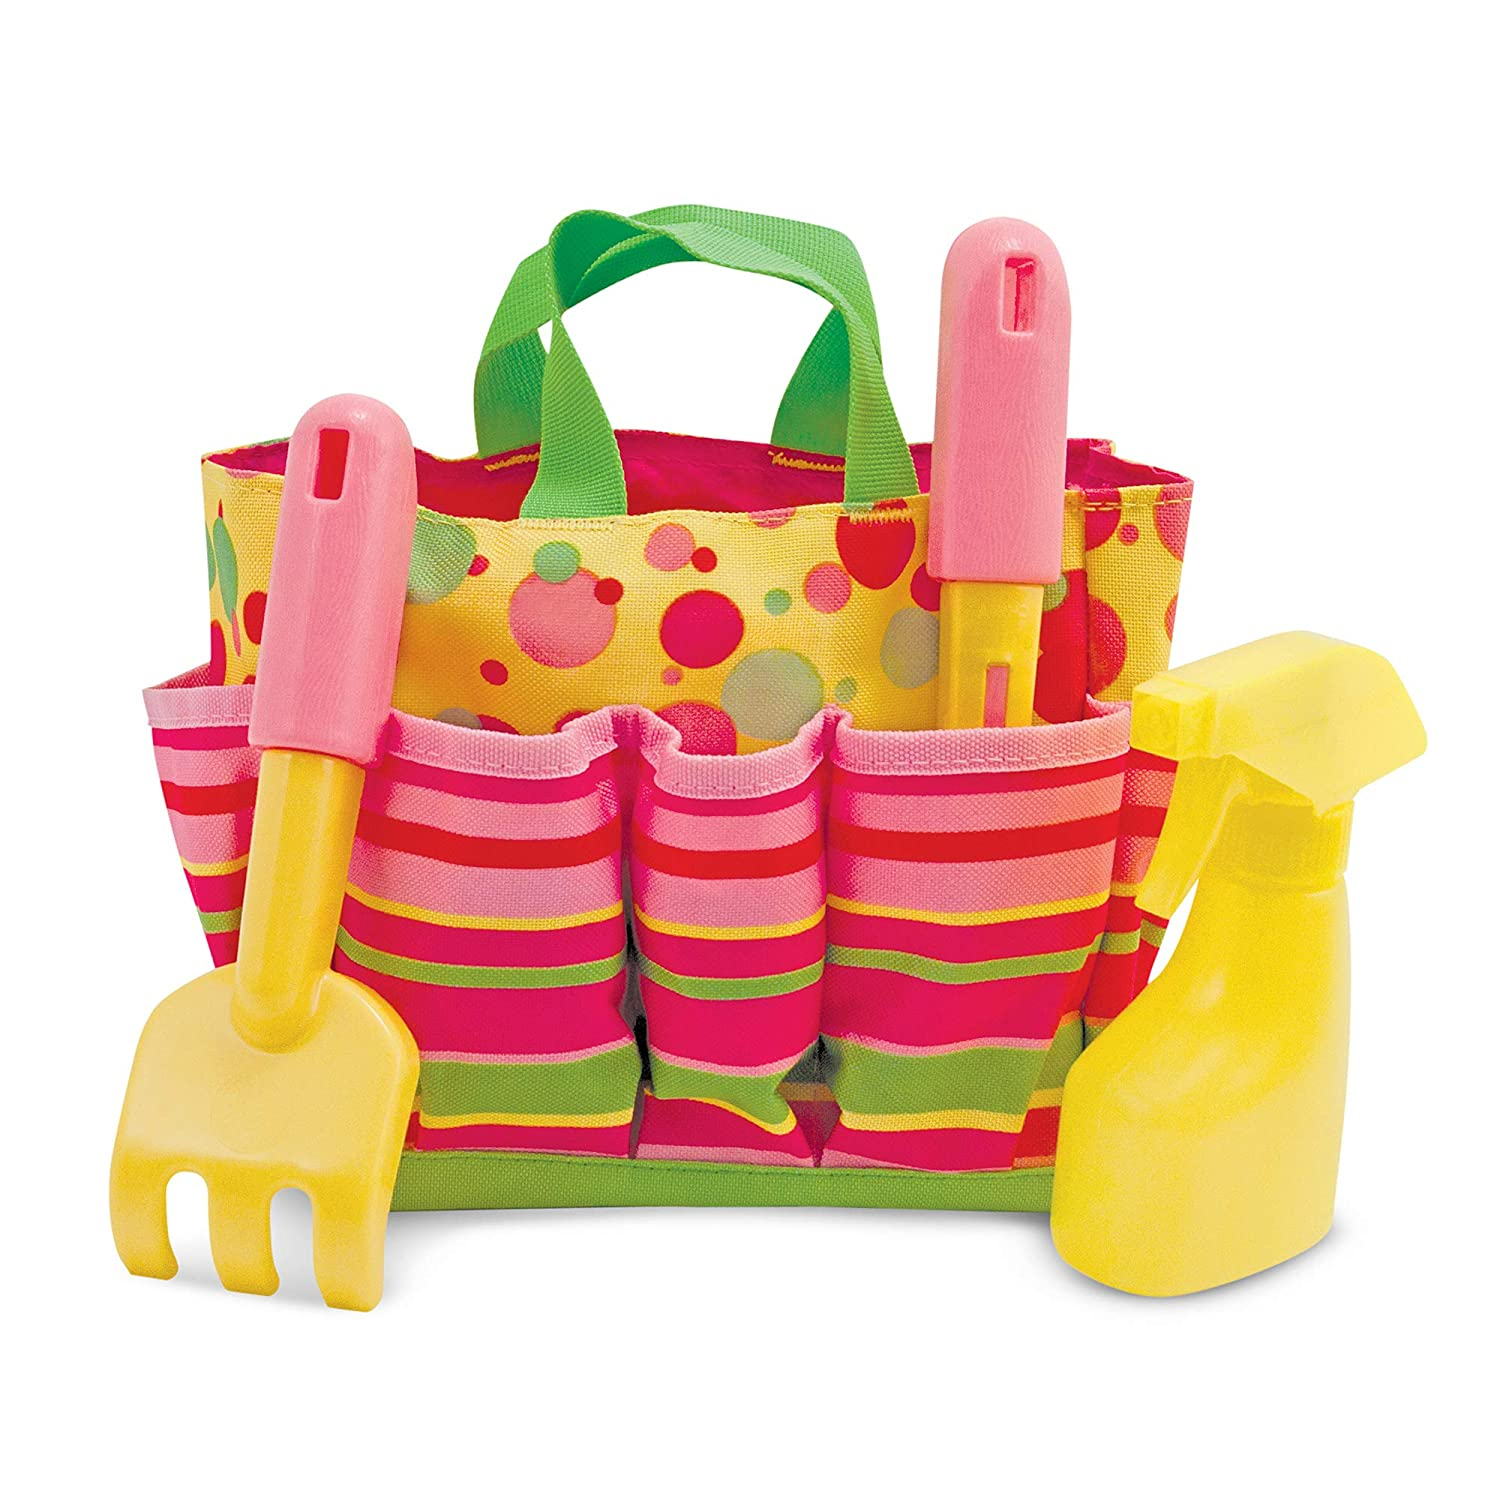 Melissa & Doug Sunny Patch Blossom Bright Gardening Tote Set With Tools